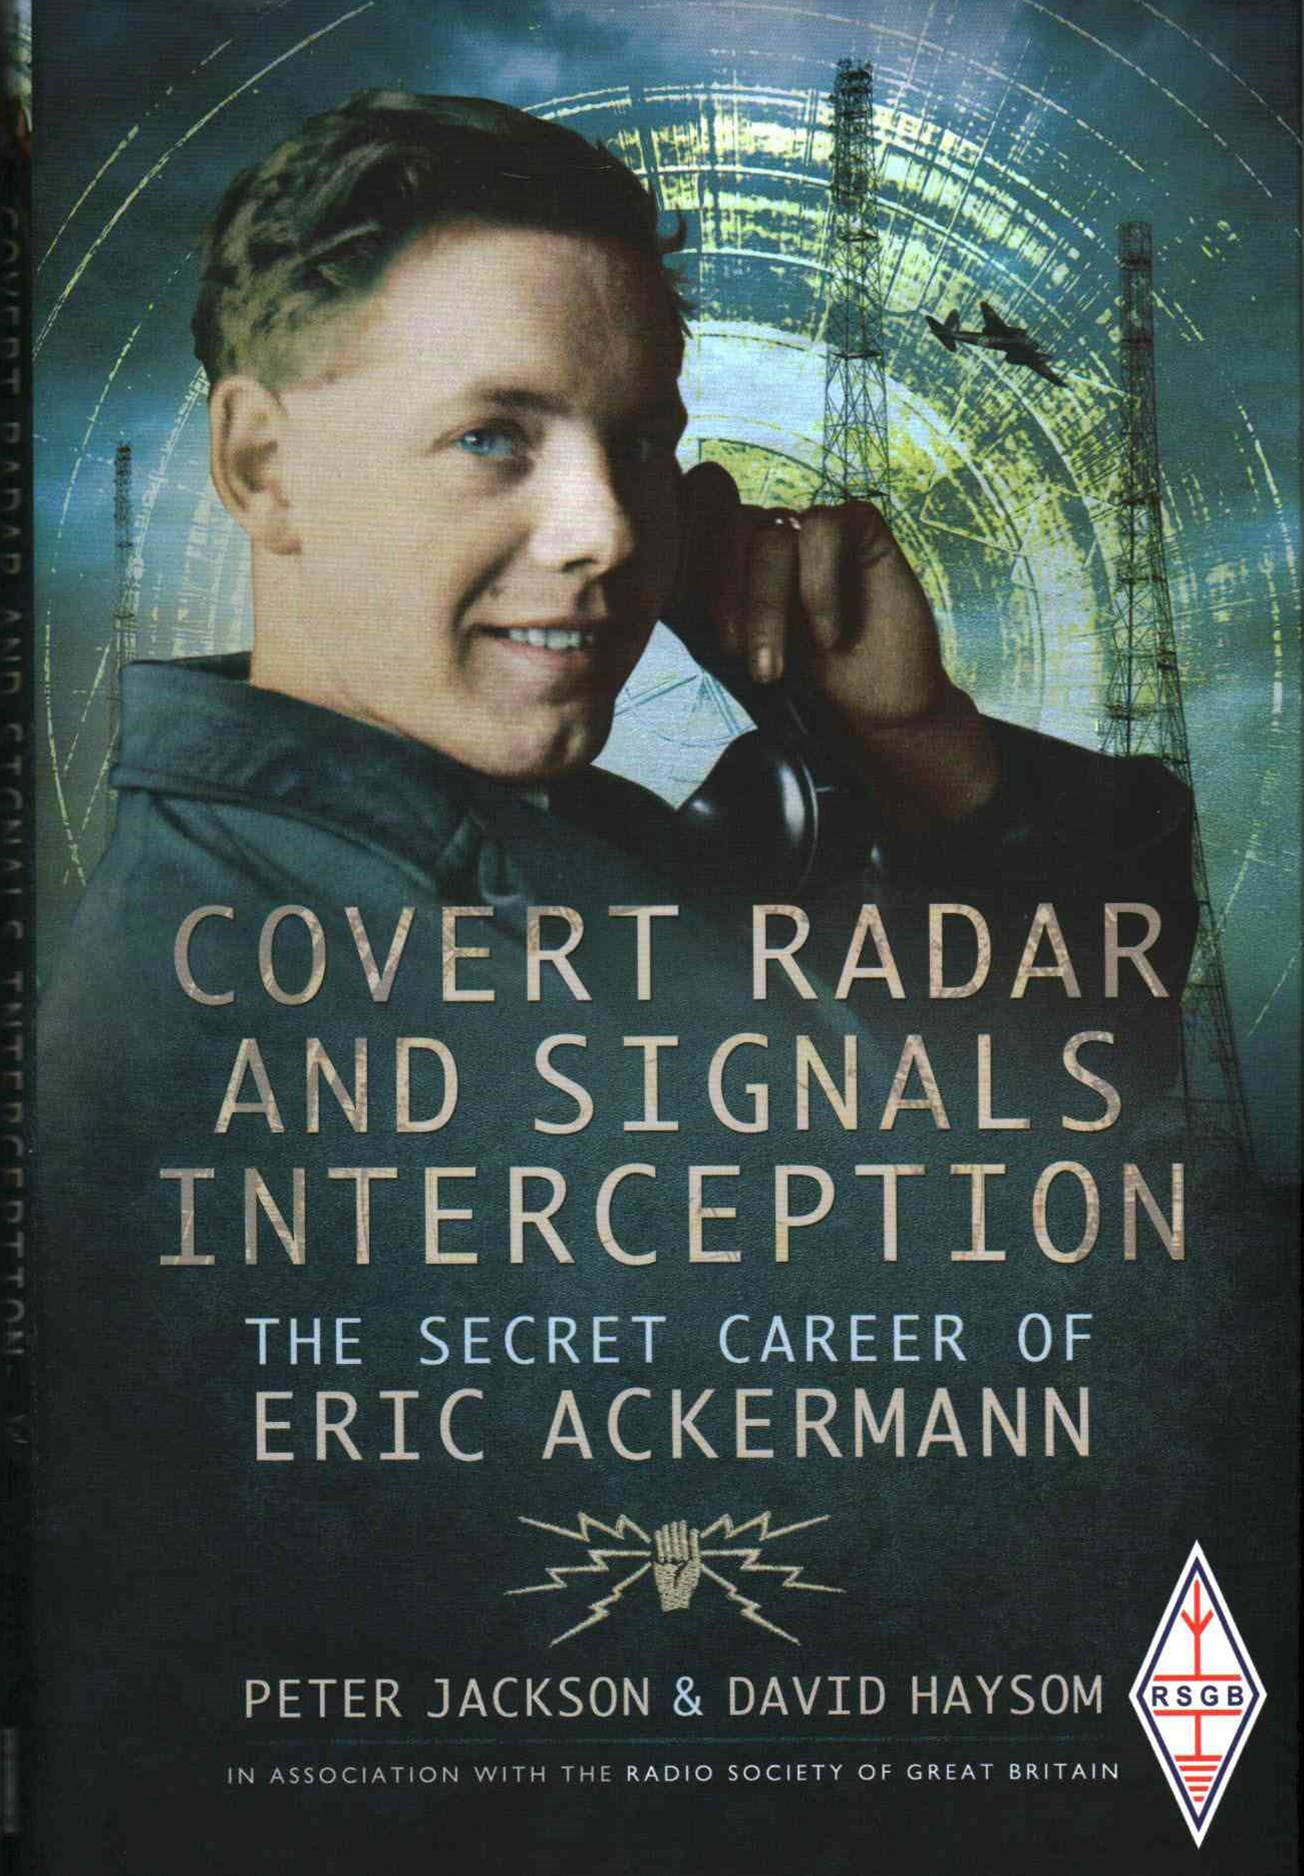 Covert Radar and Signals Interception: The Secret Career of Eric Ackermann